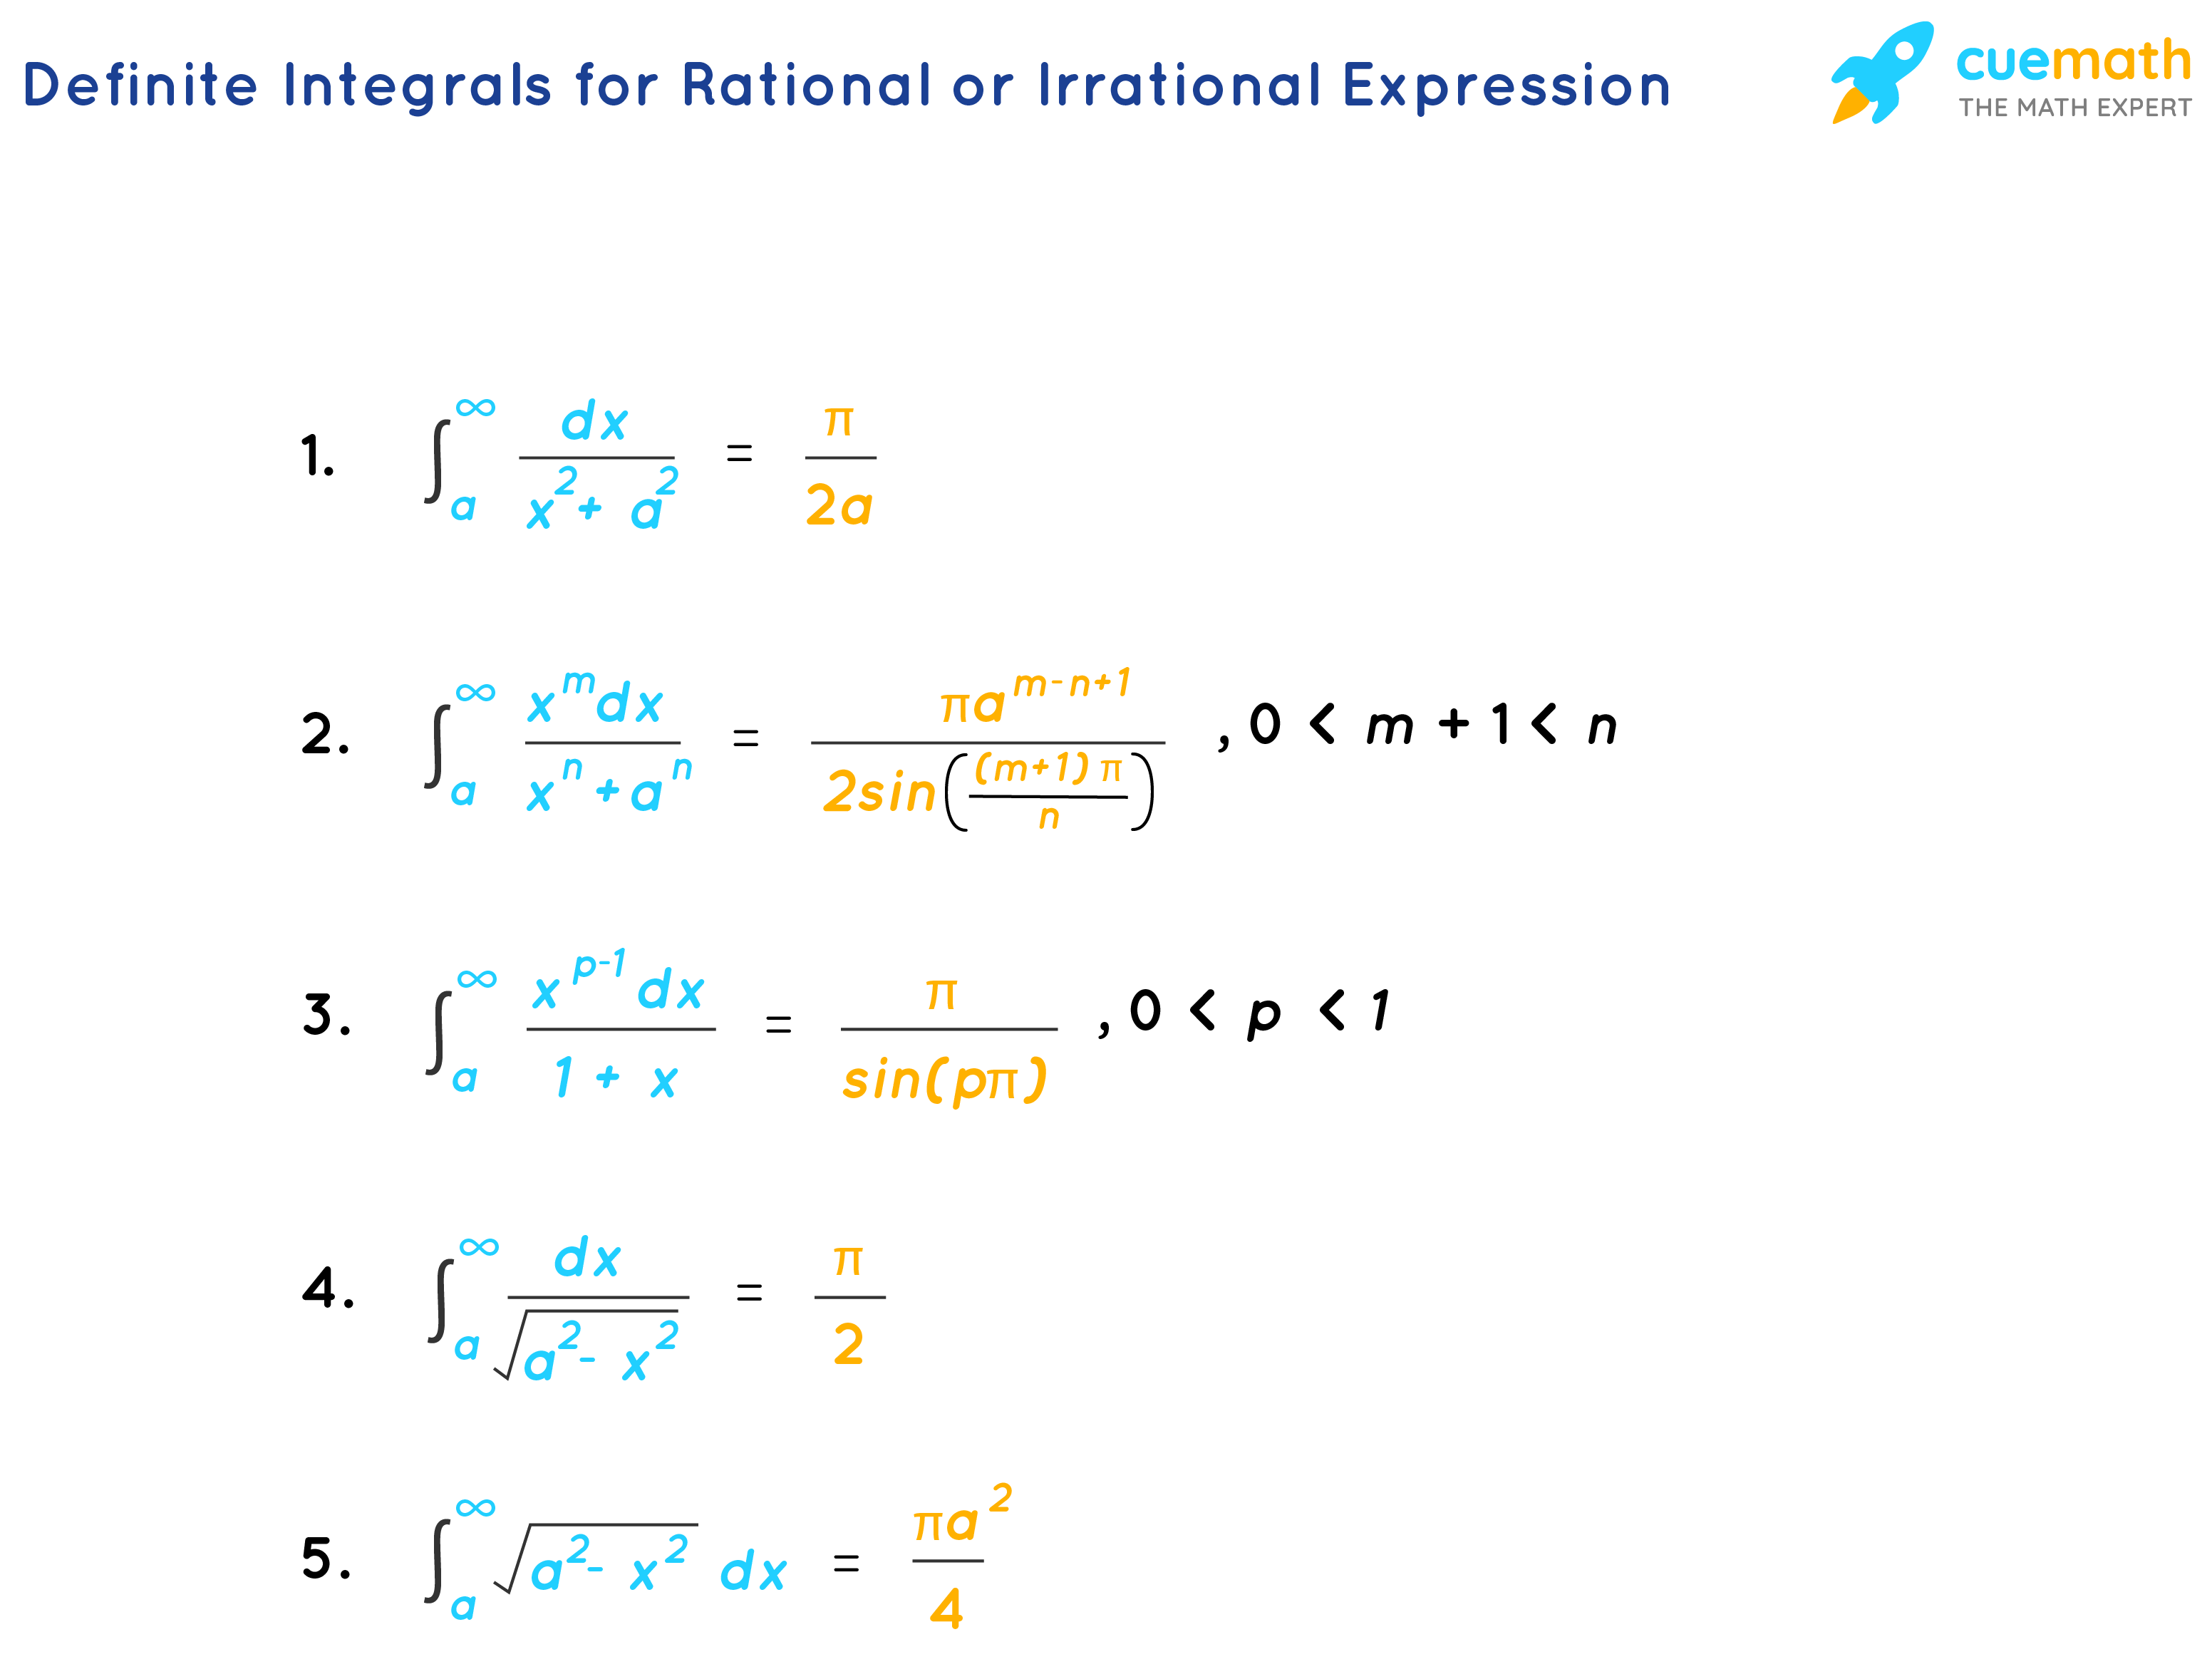 Definite Integrals for Rational or Irrational Expression